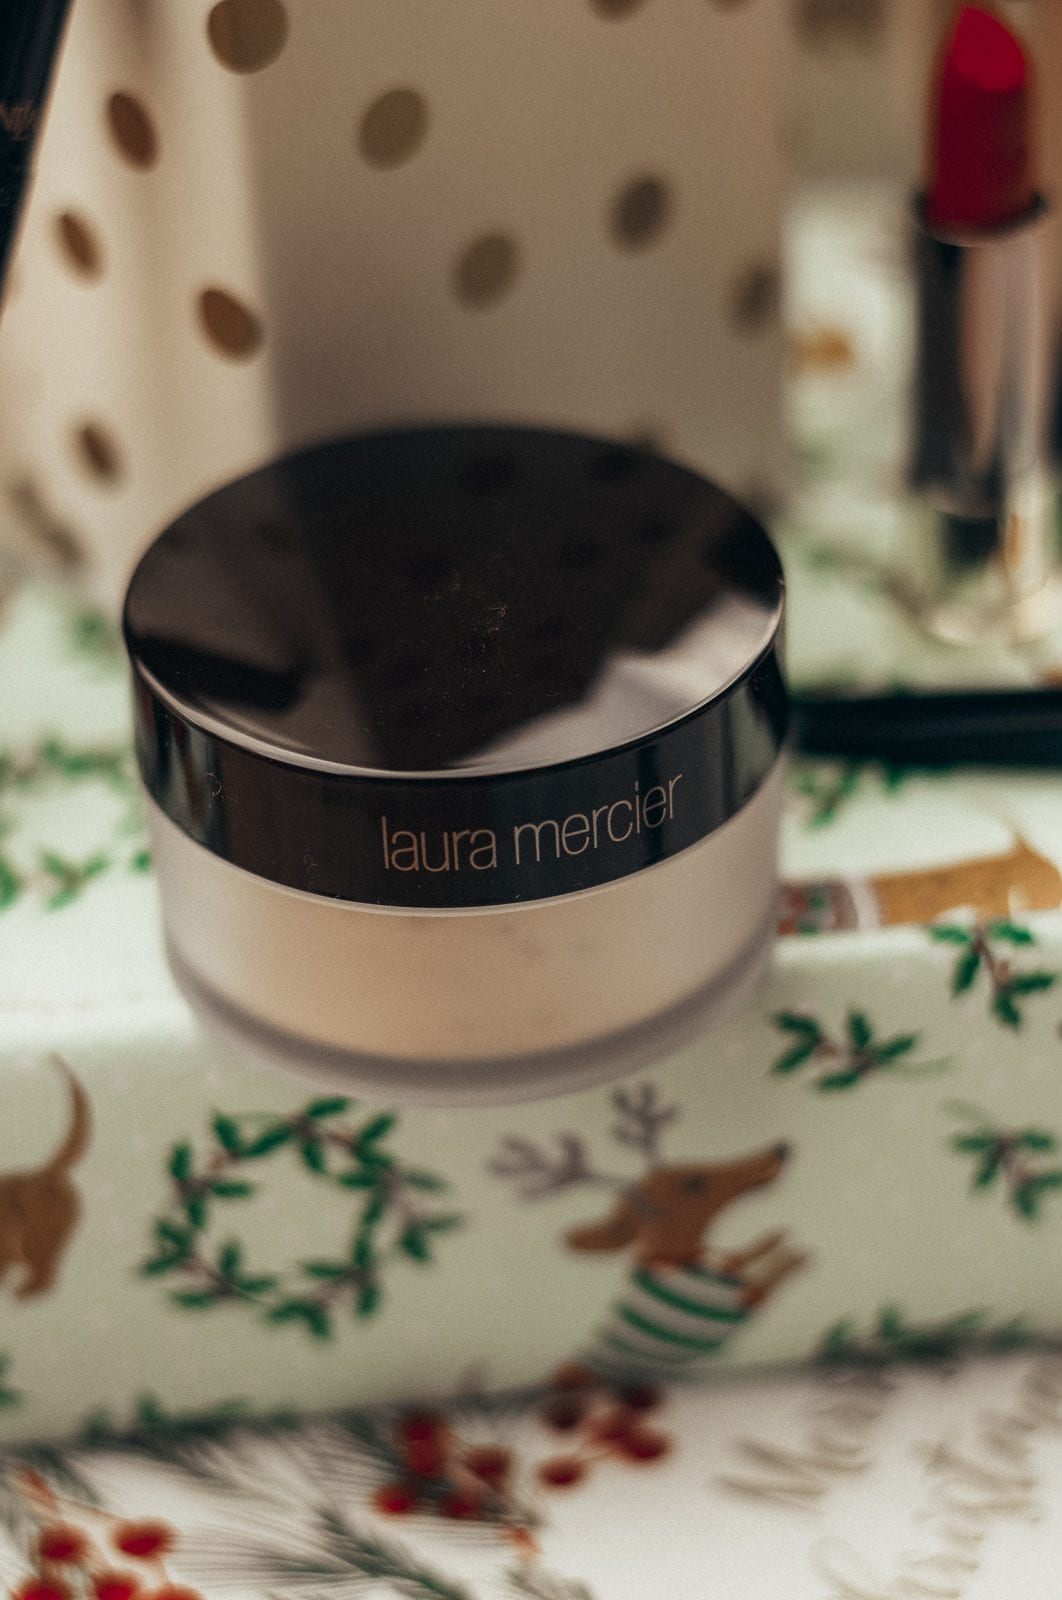 This is a close up photo of the Laura Mercier Translucent Powder.